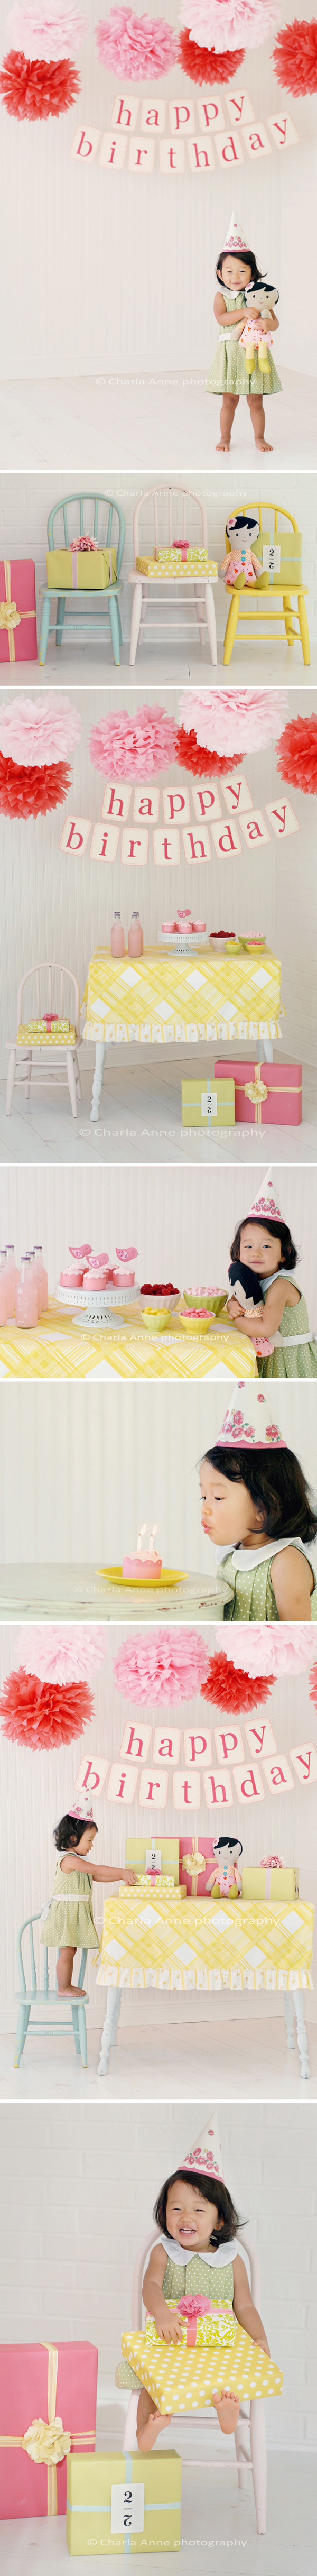 Lily's 2nd birthday